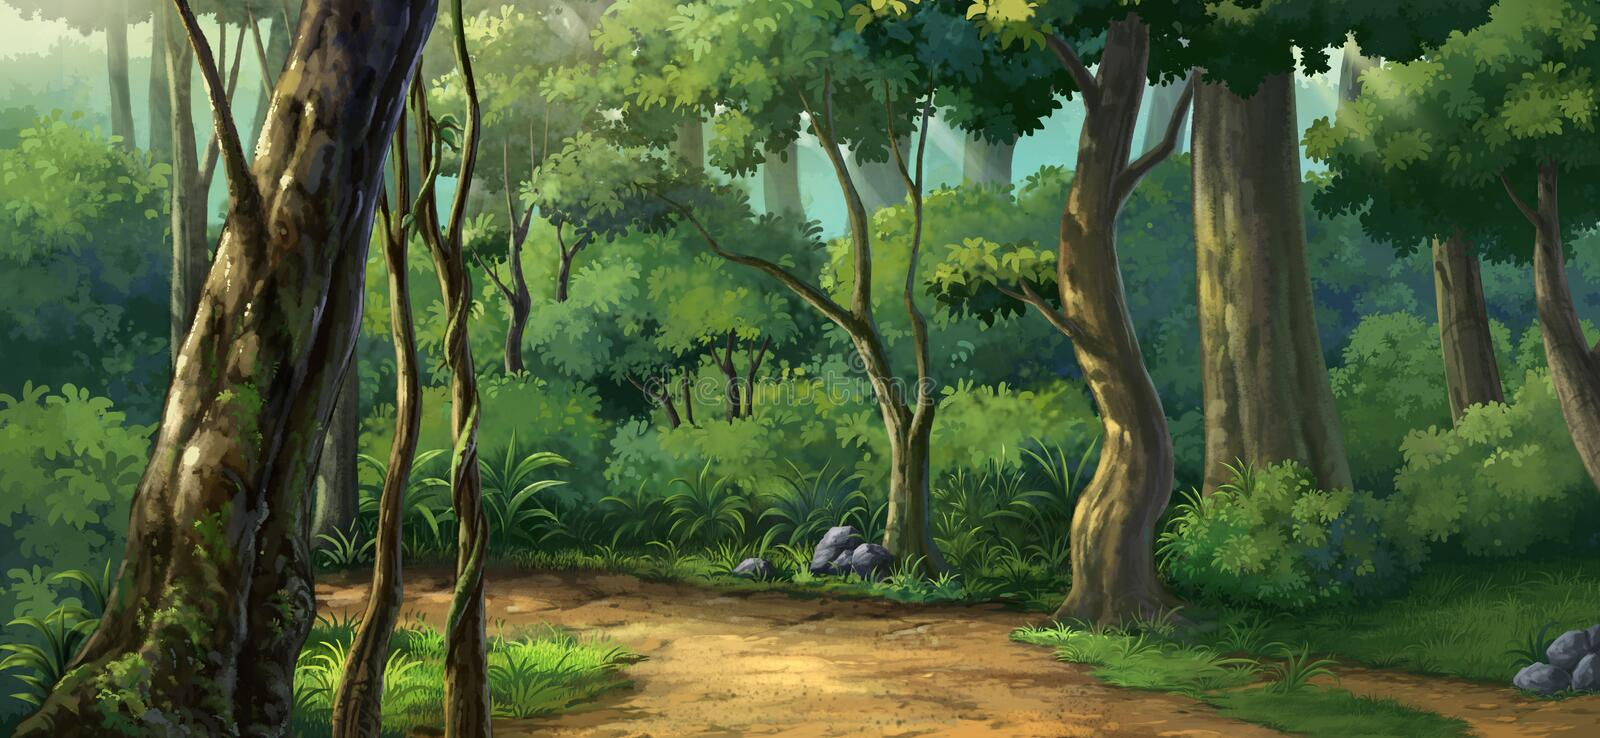 Morning light in the forest royalty free illustration